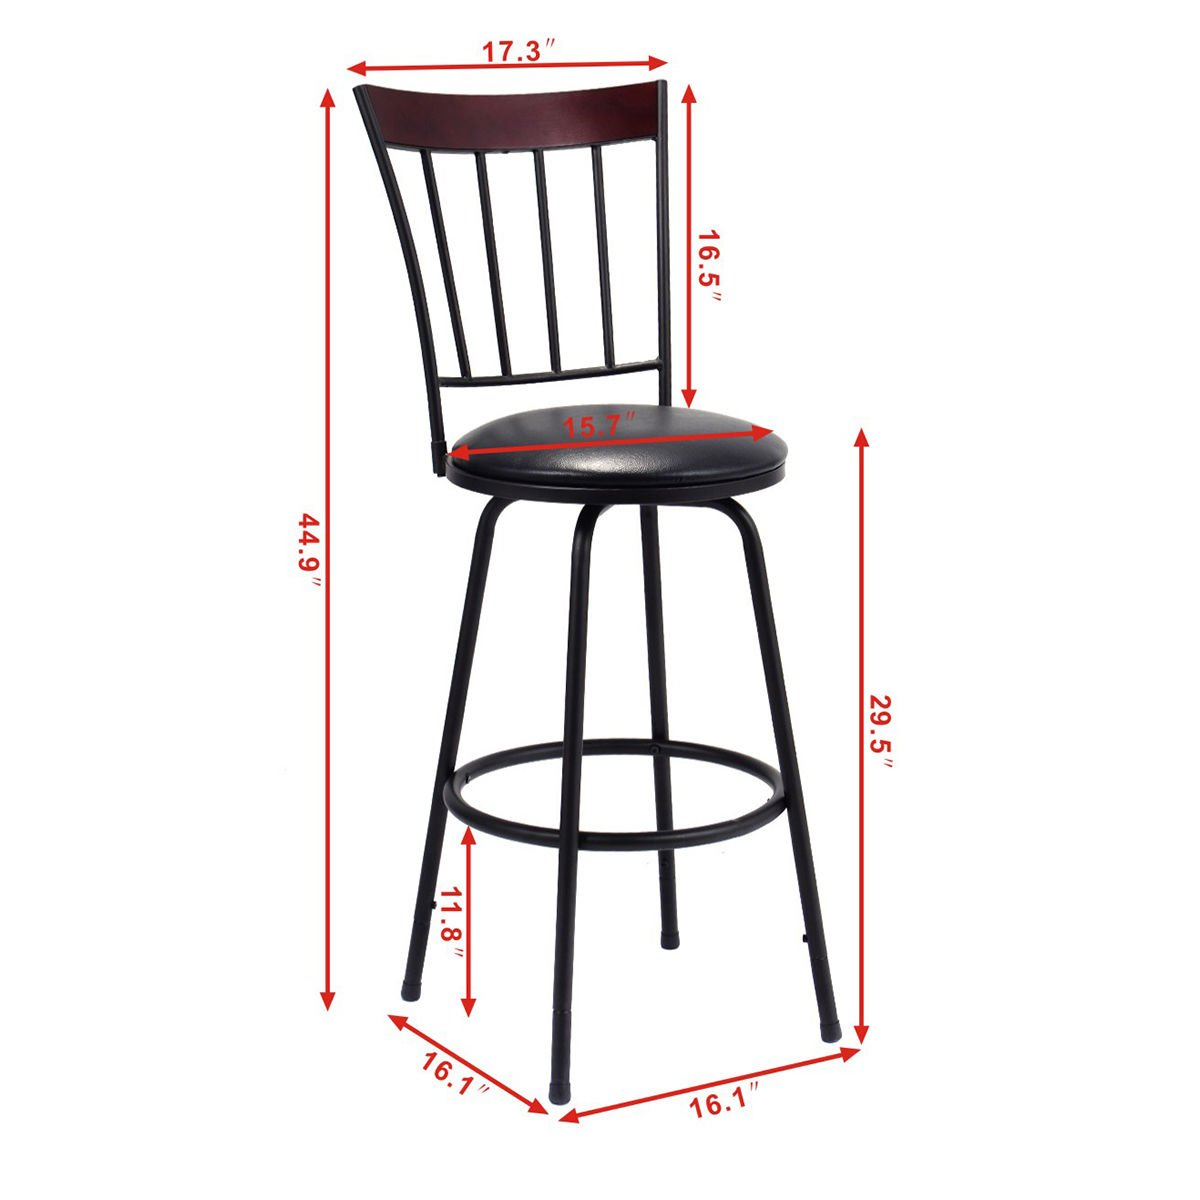 Costway Swivel Counter Height Bar Stool Modern Barstool Bistro Pub Chair Set of 3